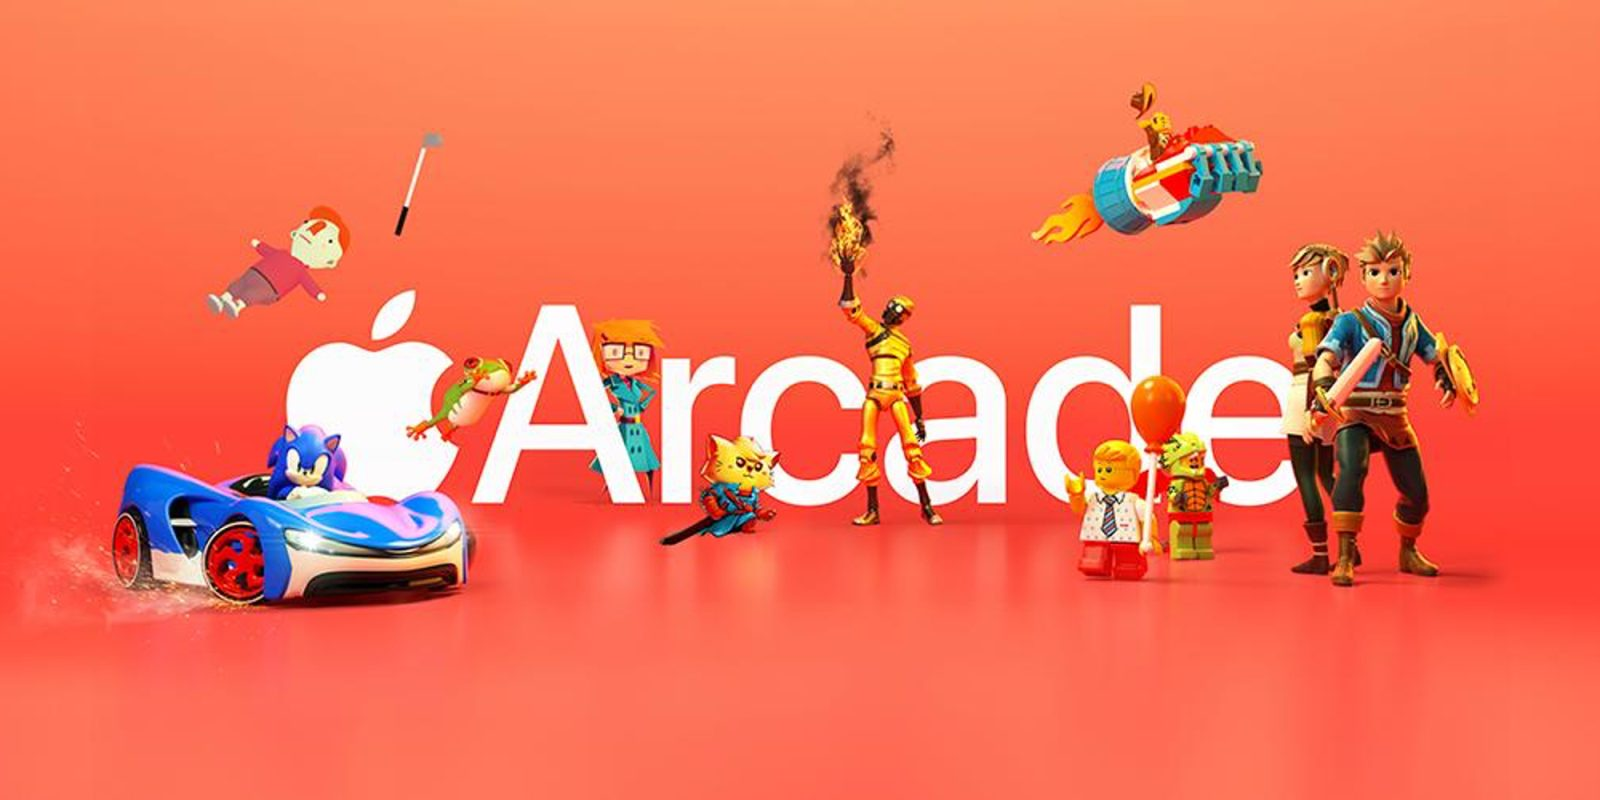 Apple Arcade exclusive means not on Android, consoles are fair game